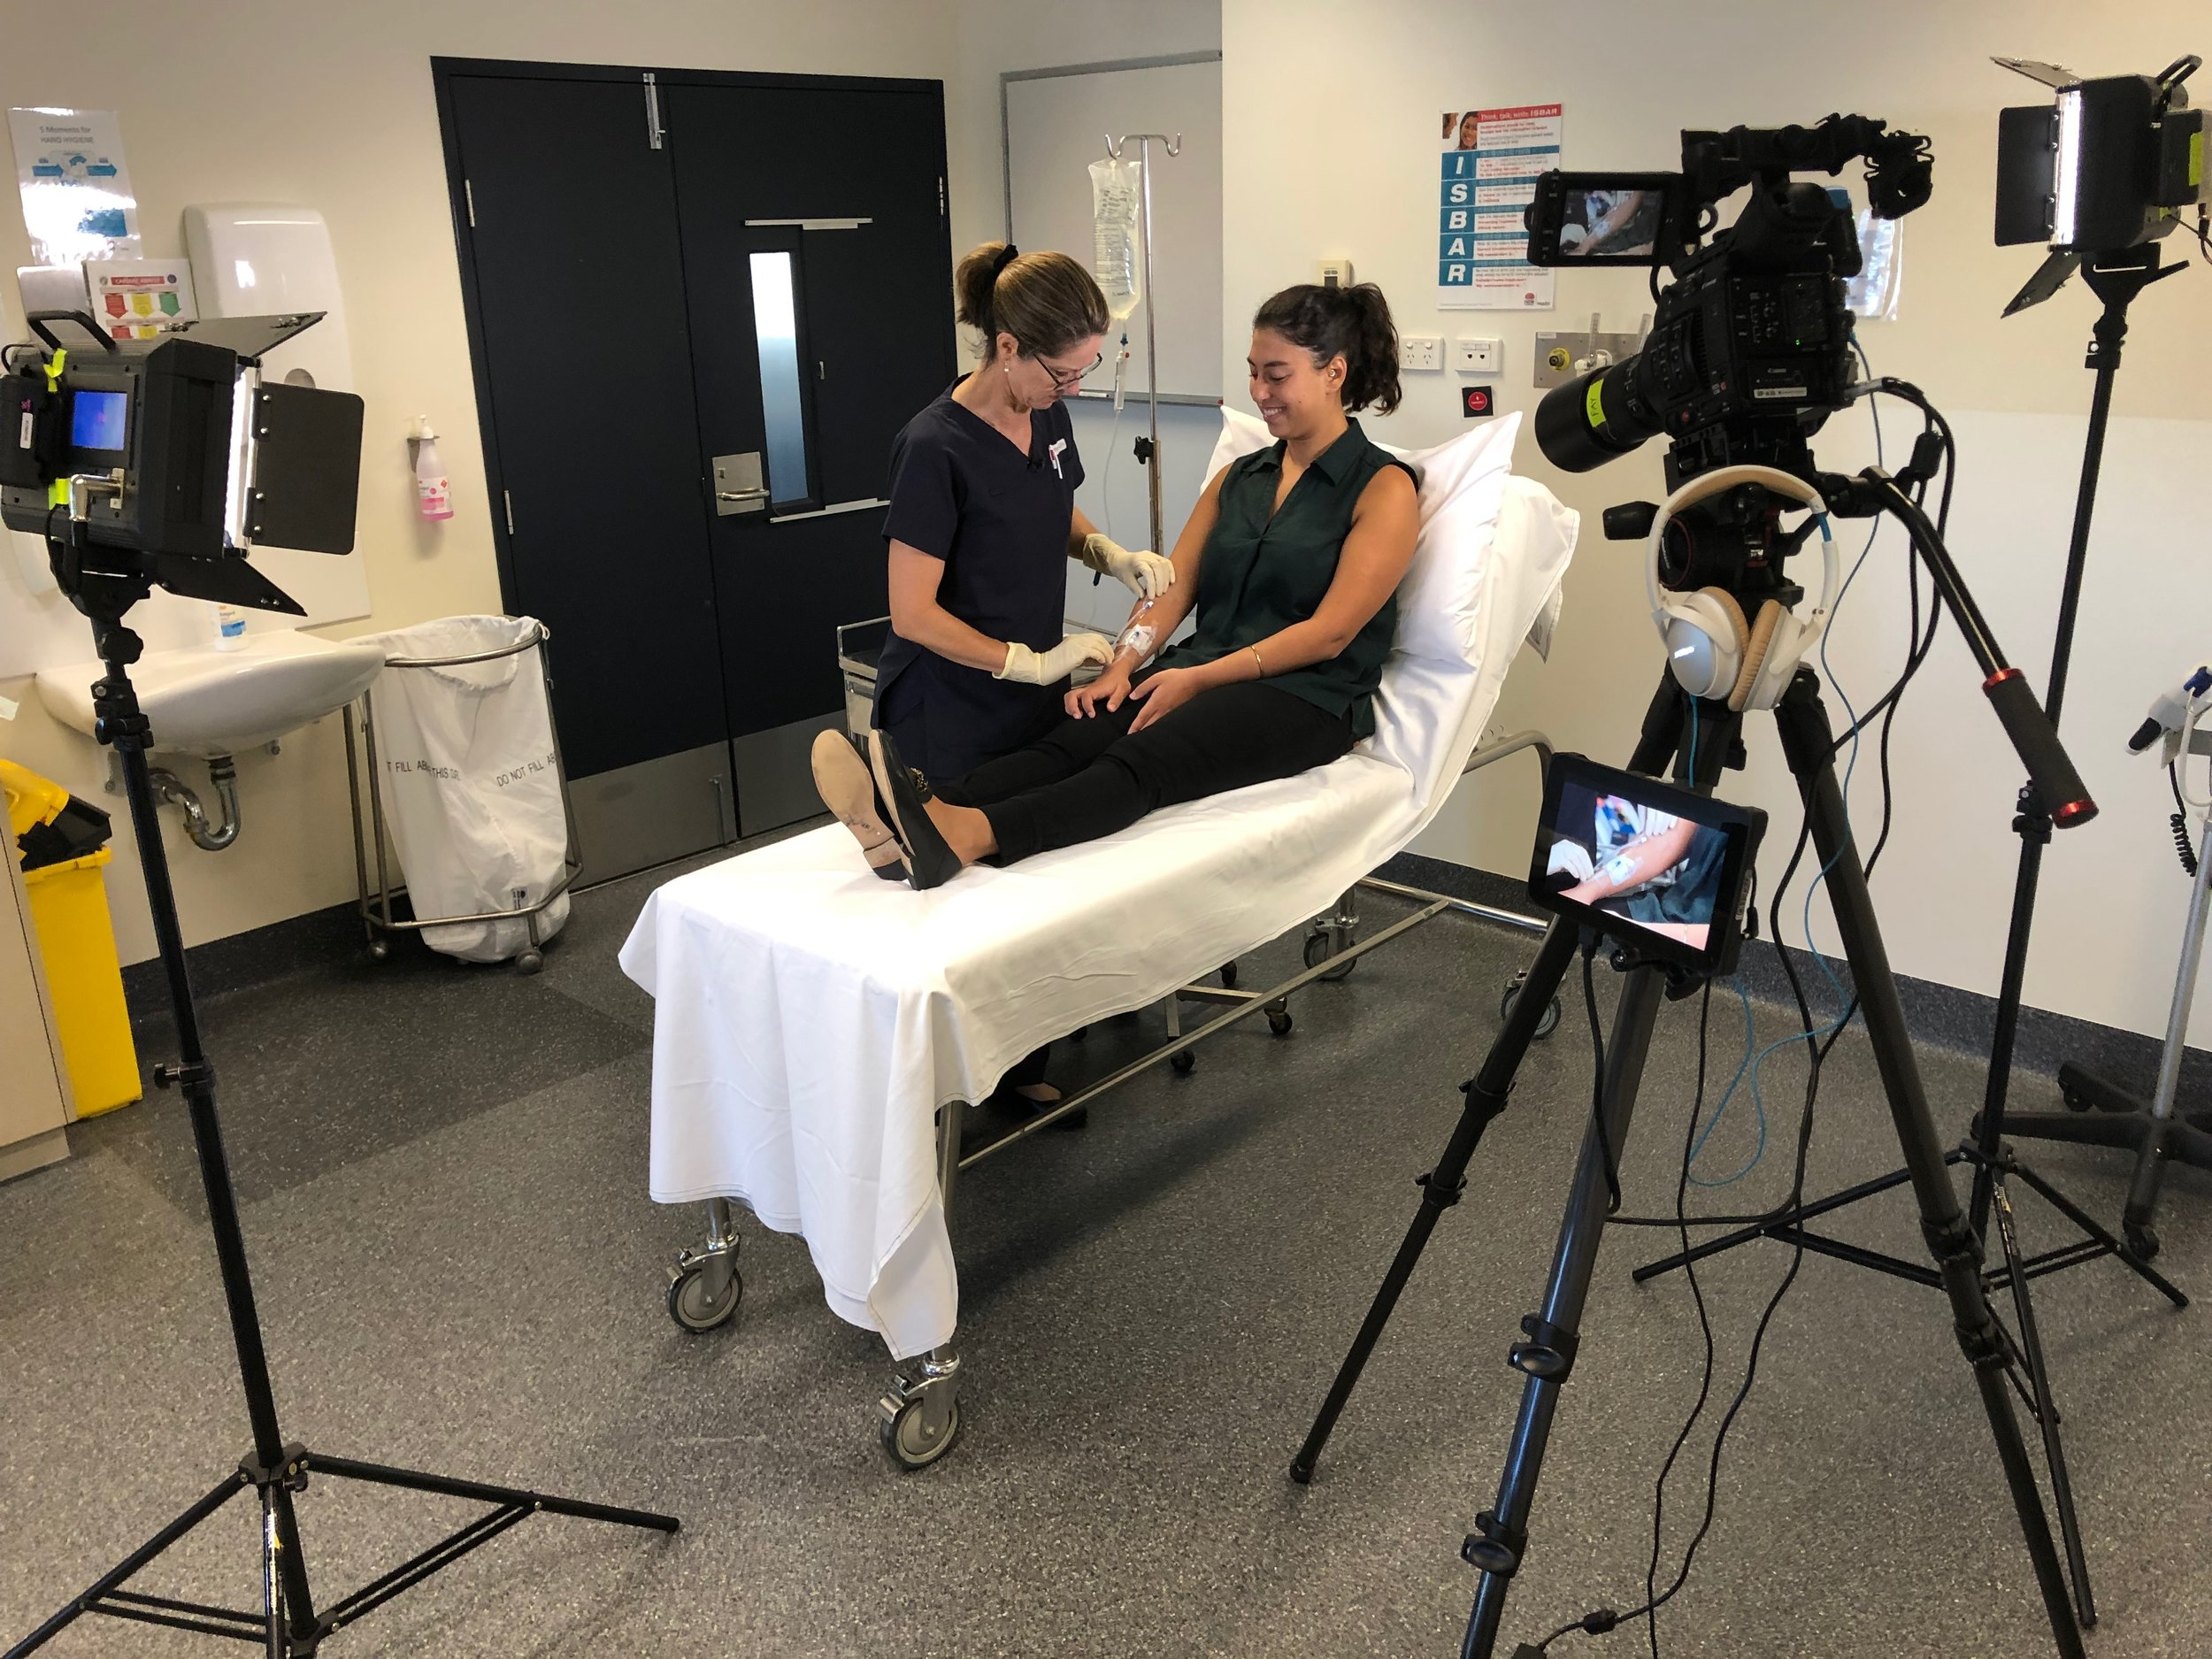 Filming educational medical clinical videos